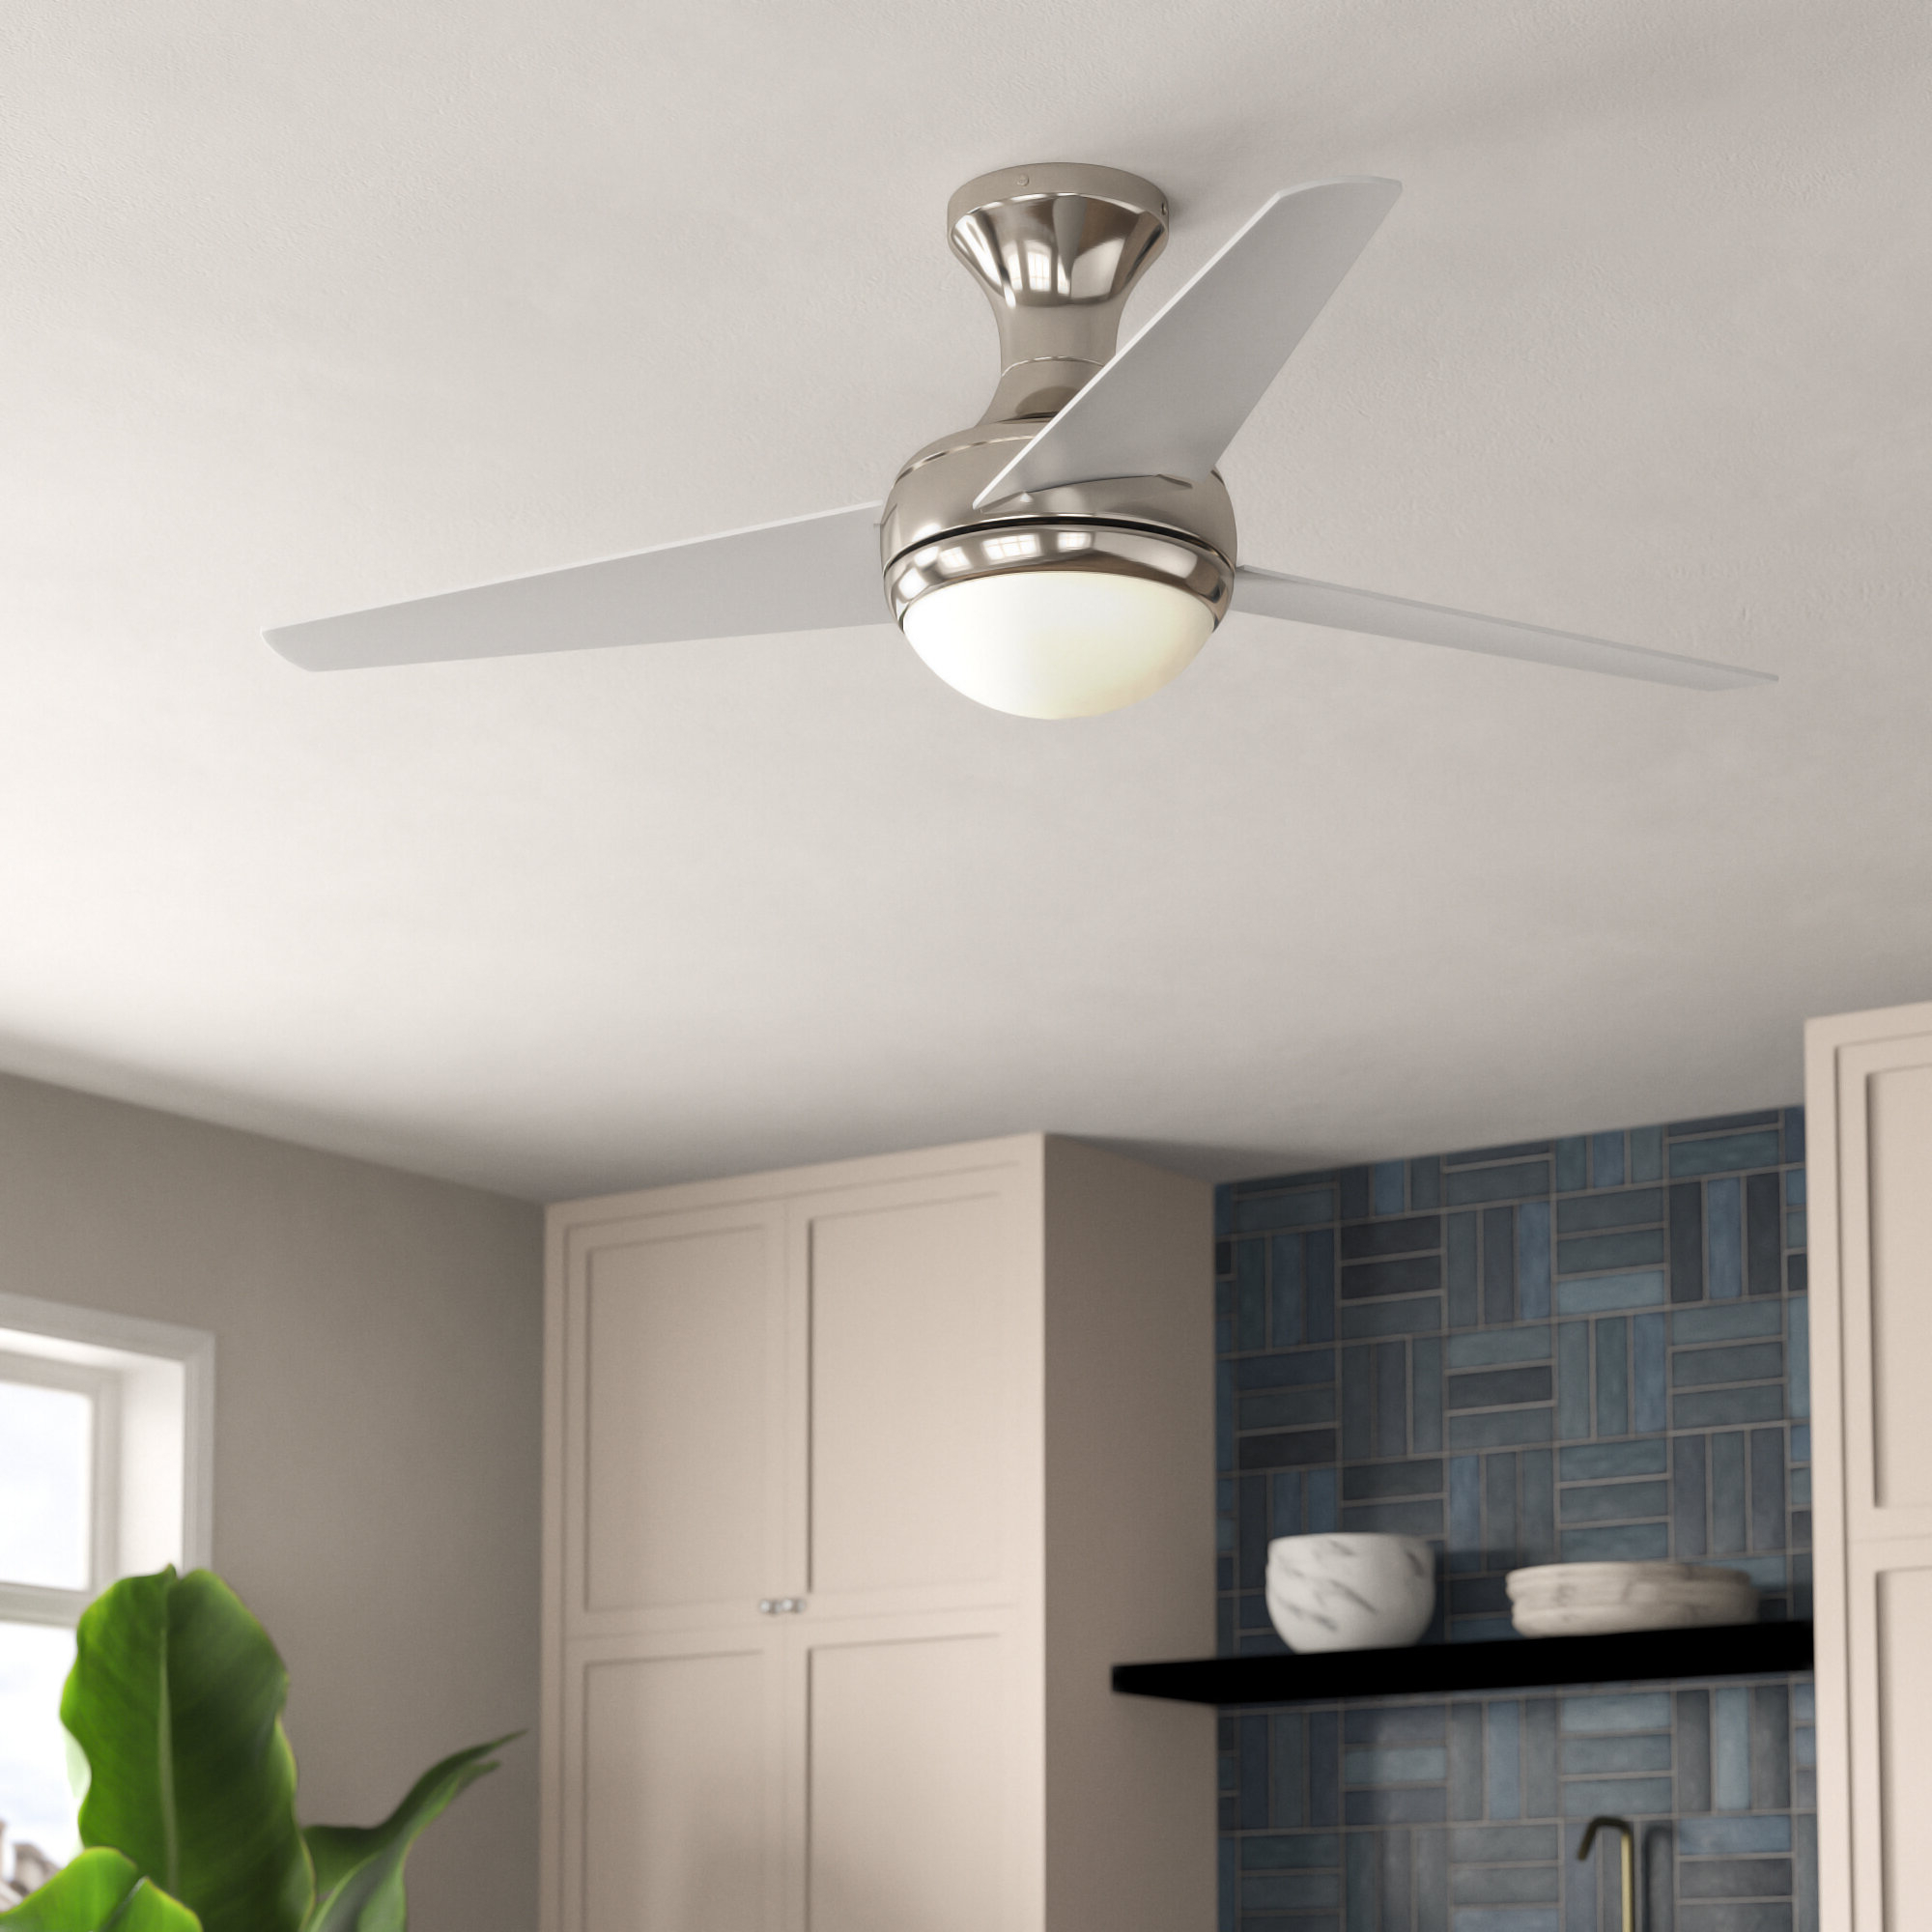 Heskett 3 Blade Led Ceiling Fans With Regard To Most Recent Modern Mercury Row Ceiling Fans (Gallery 12 of 20)